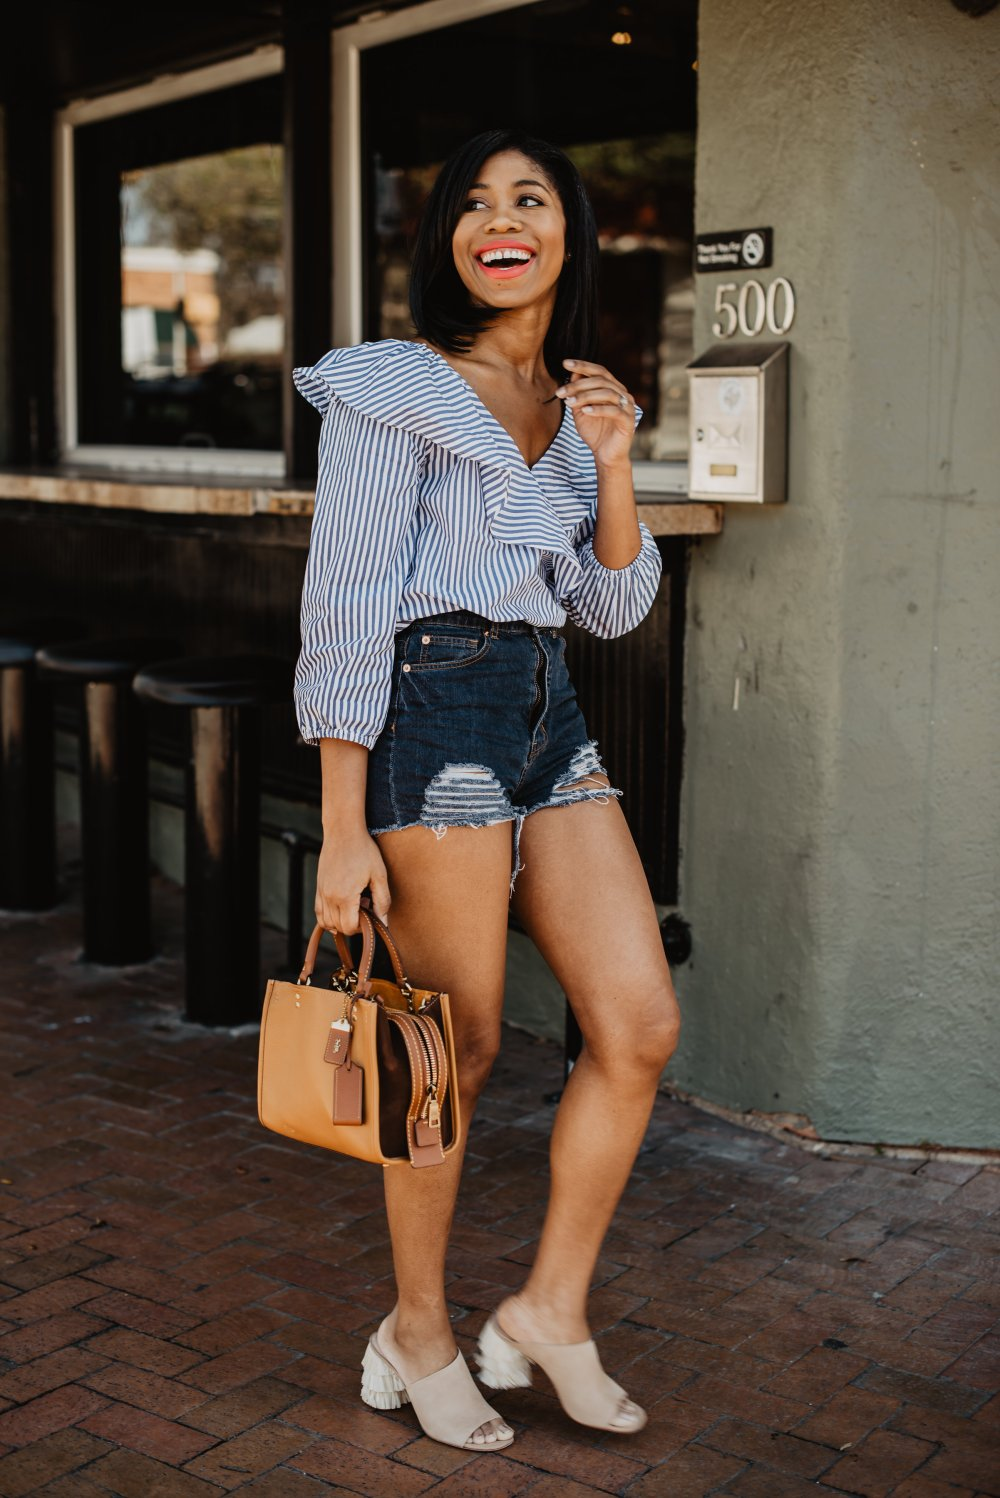 denim shorts fashion outfit inspiration summer style dallas stylists stephanie taylor jackson